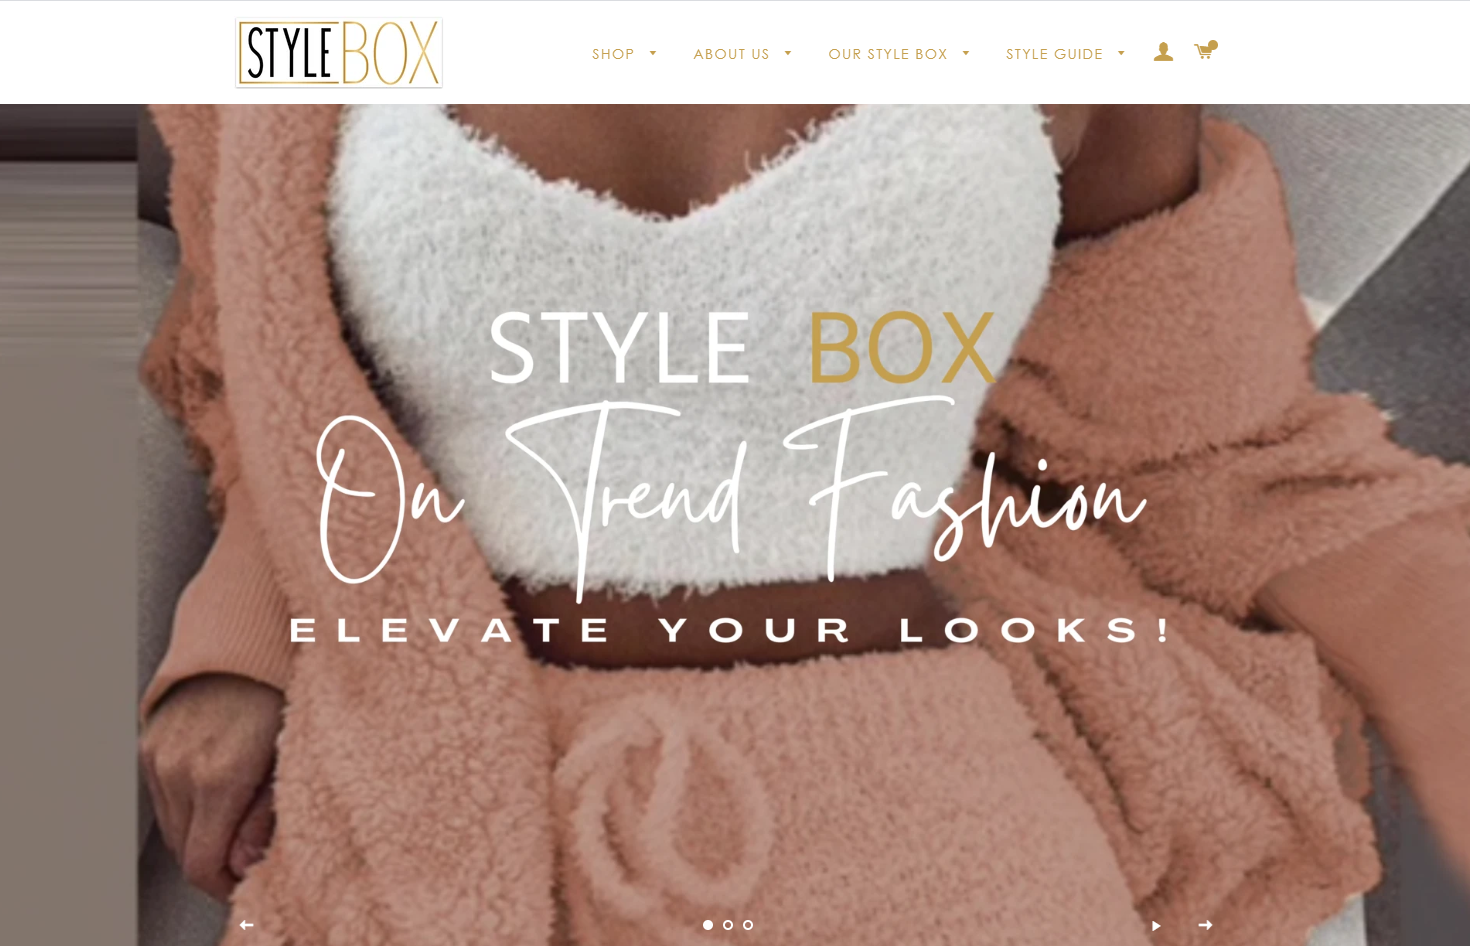 Style Box Website Homepage